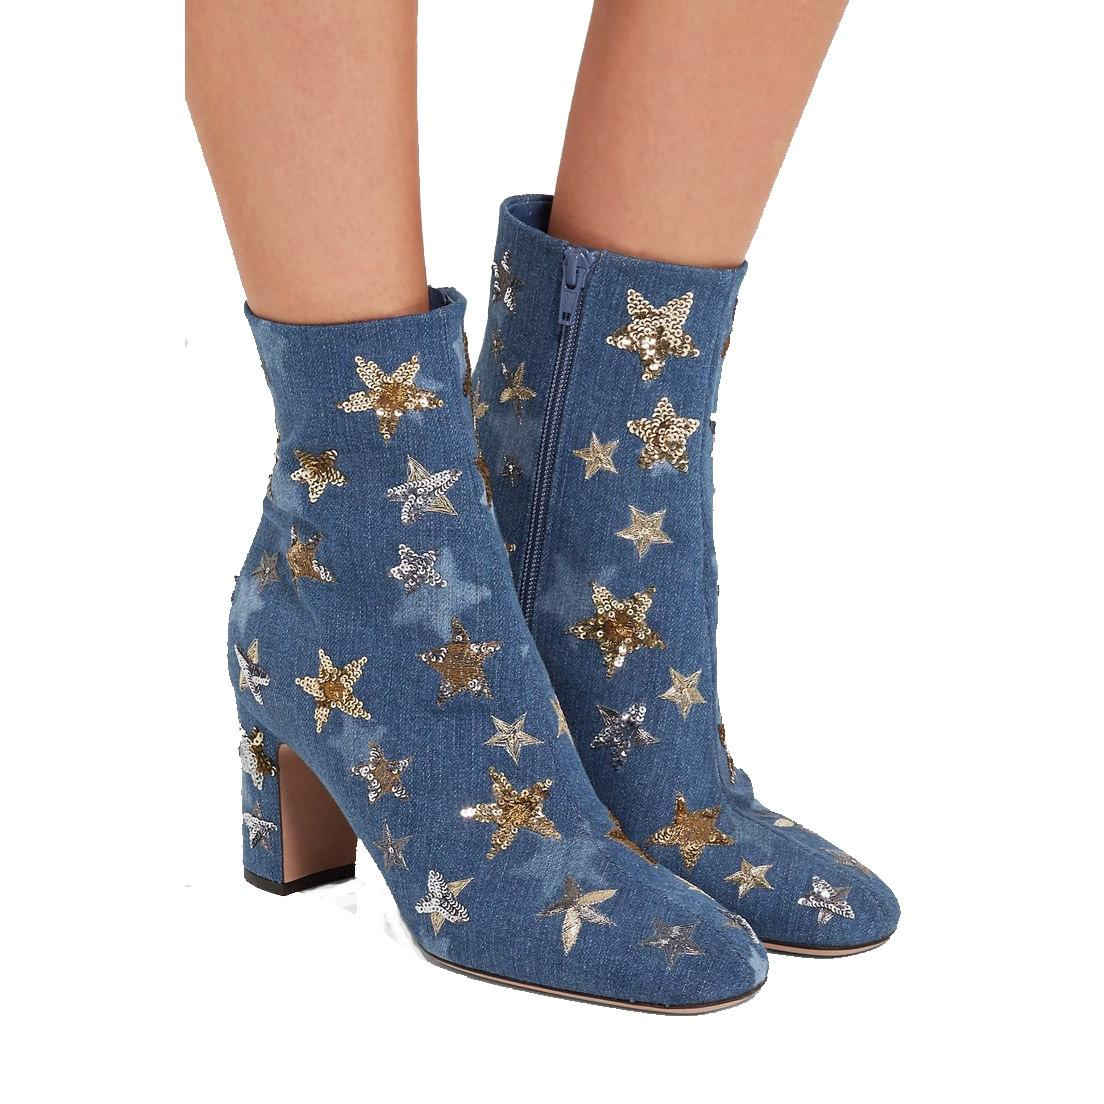 Valentino Blue Denim Star Embellished Boots/Booties Size EU 38.5 (Approx. US 8.5) Regular (M, B)